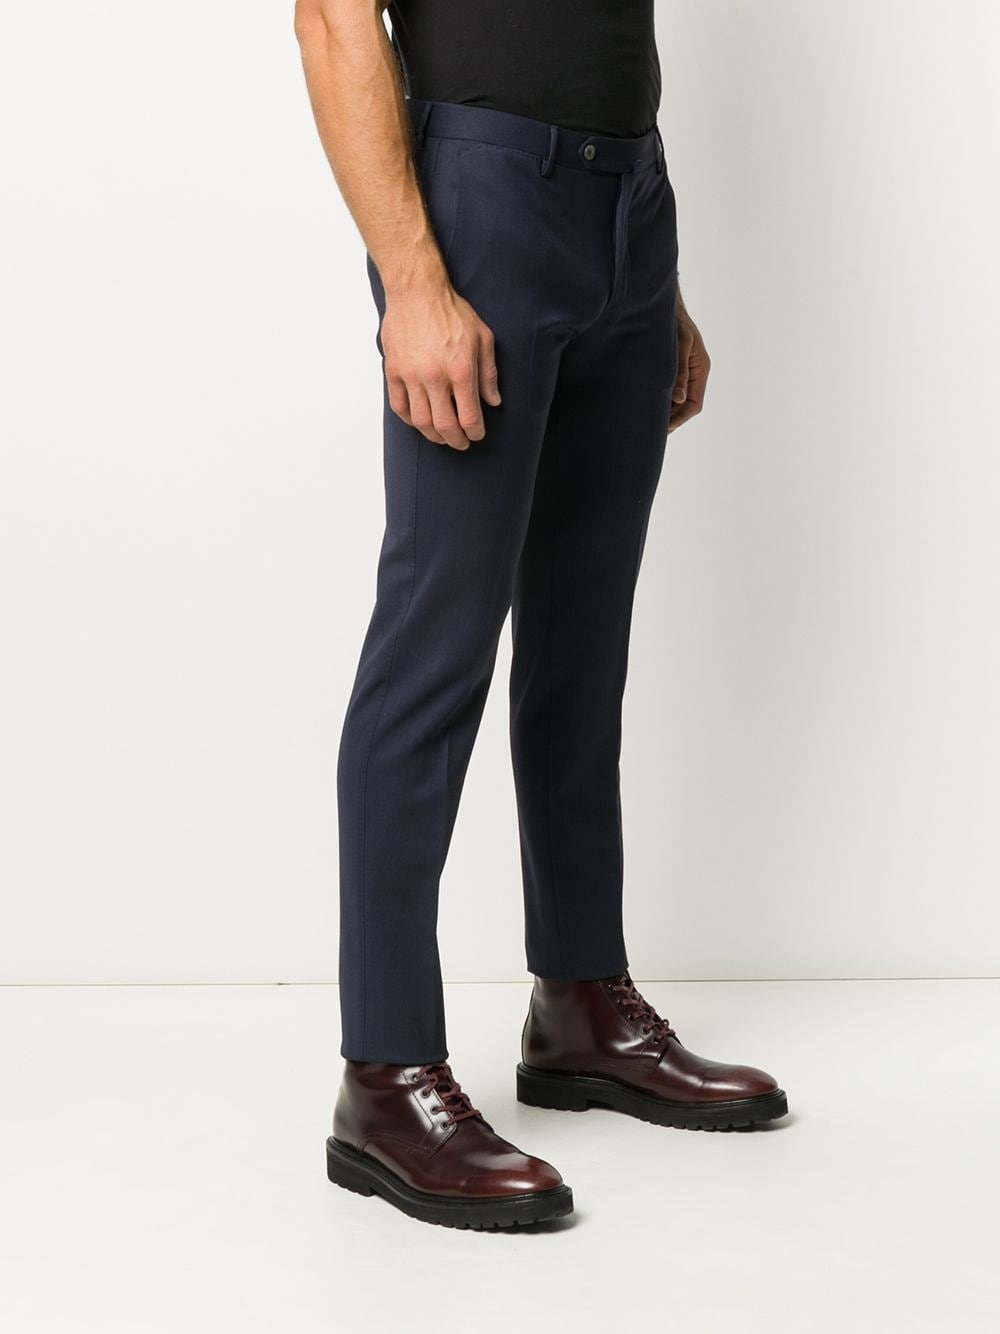 Navy wool blend slim-fit chinos  PT01 |  | COKSTVZ00TVL-PO360340